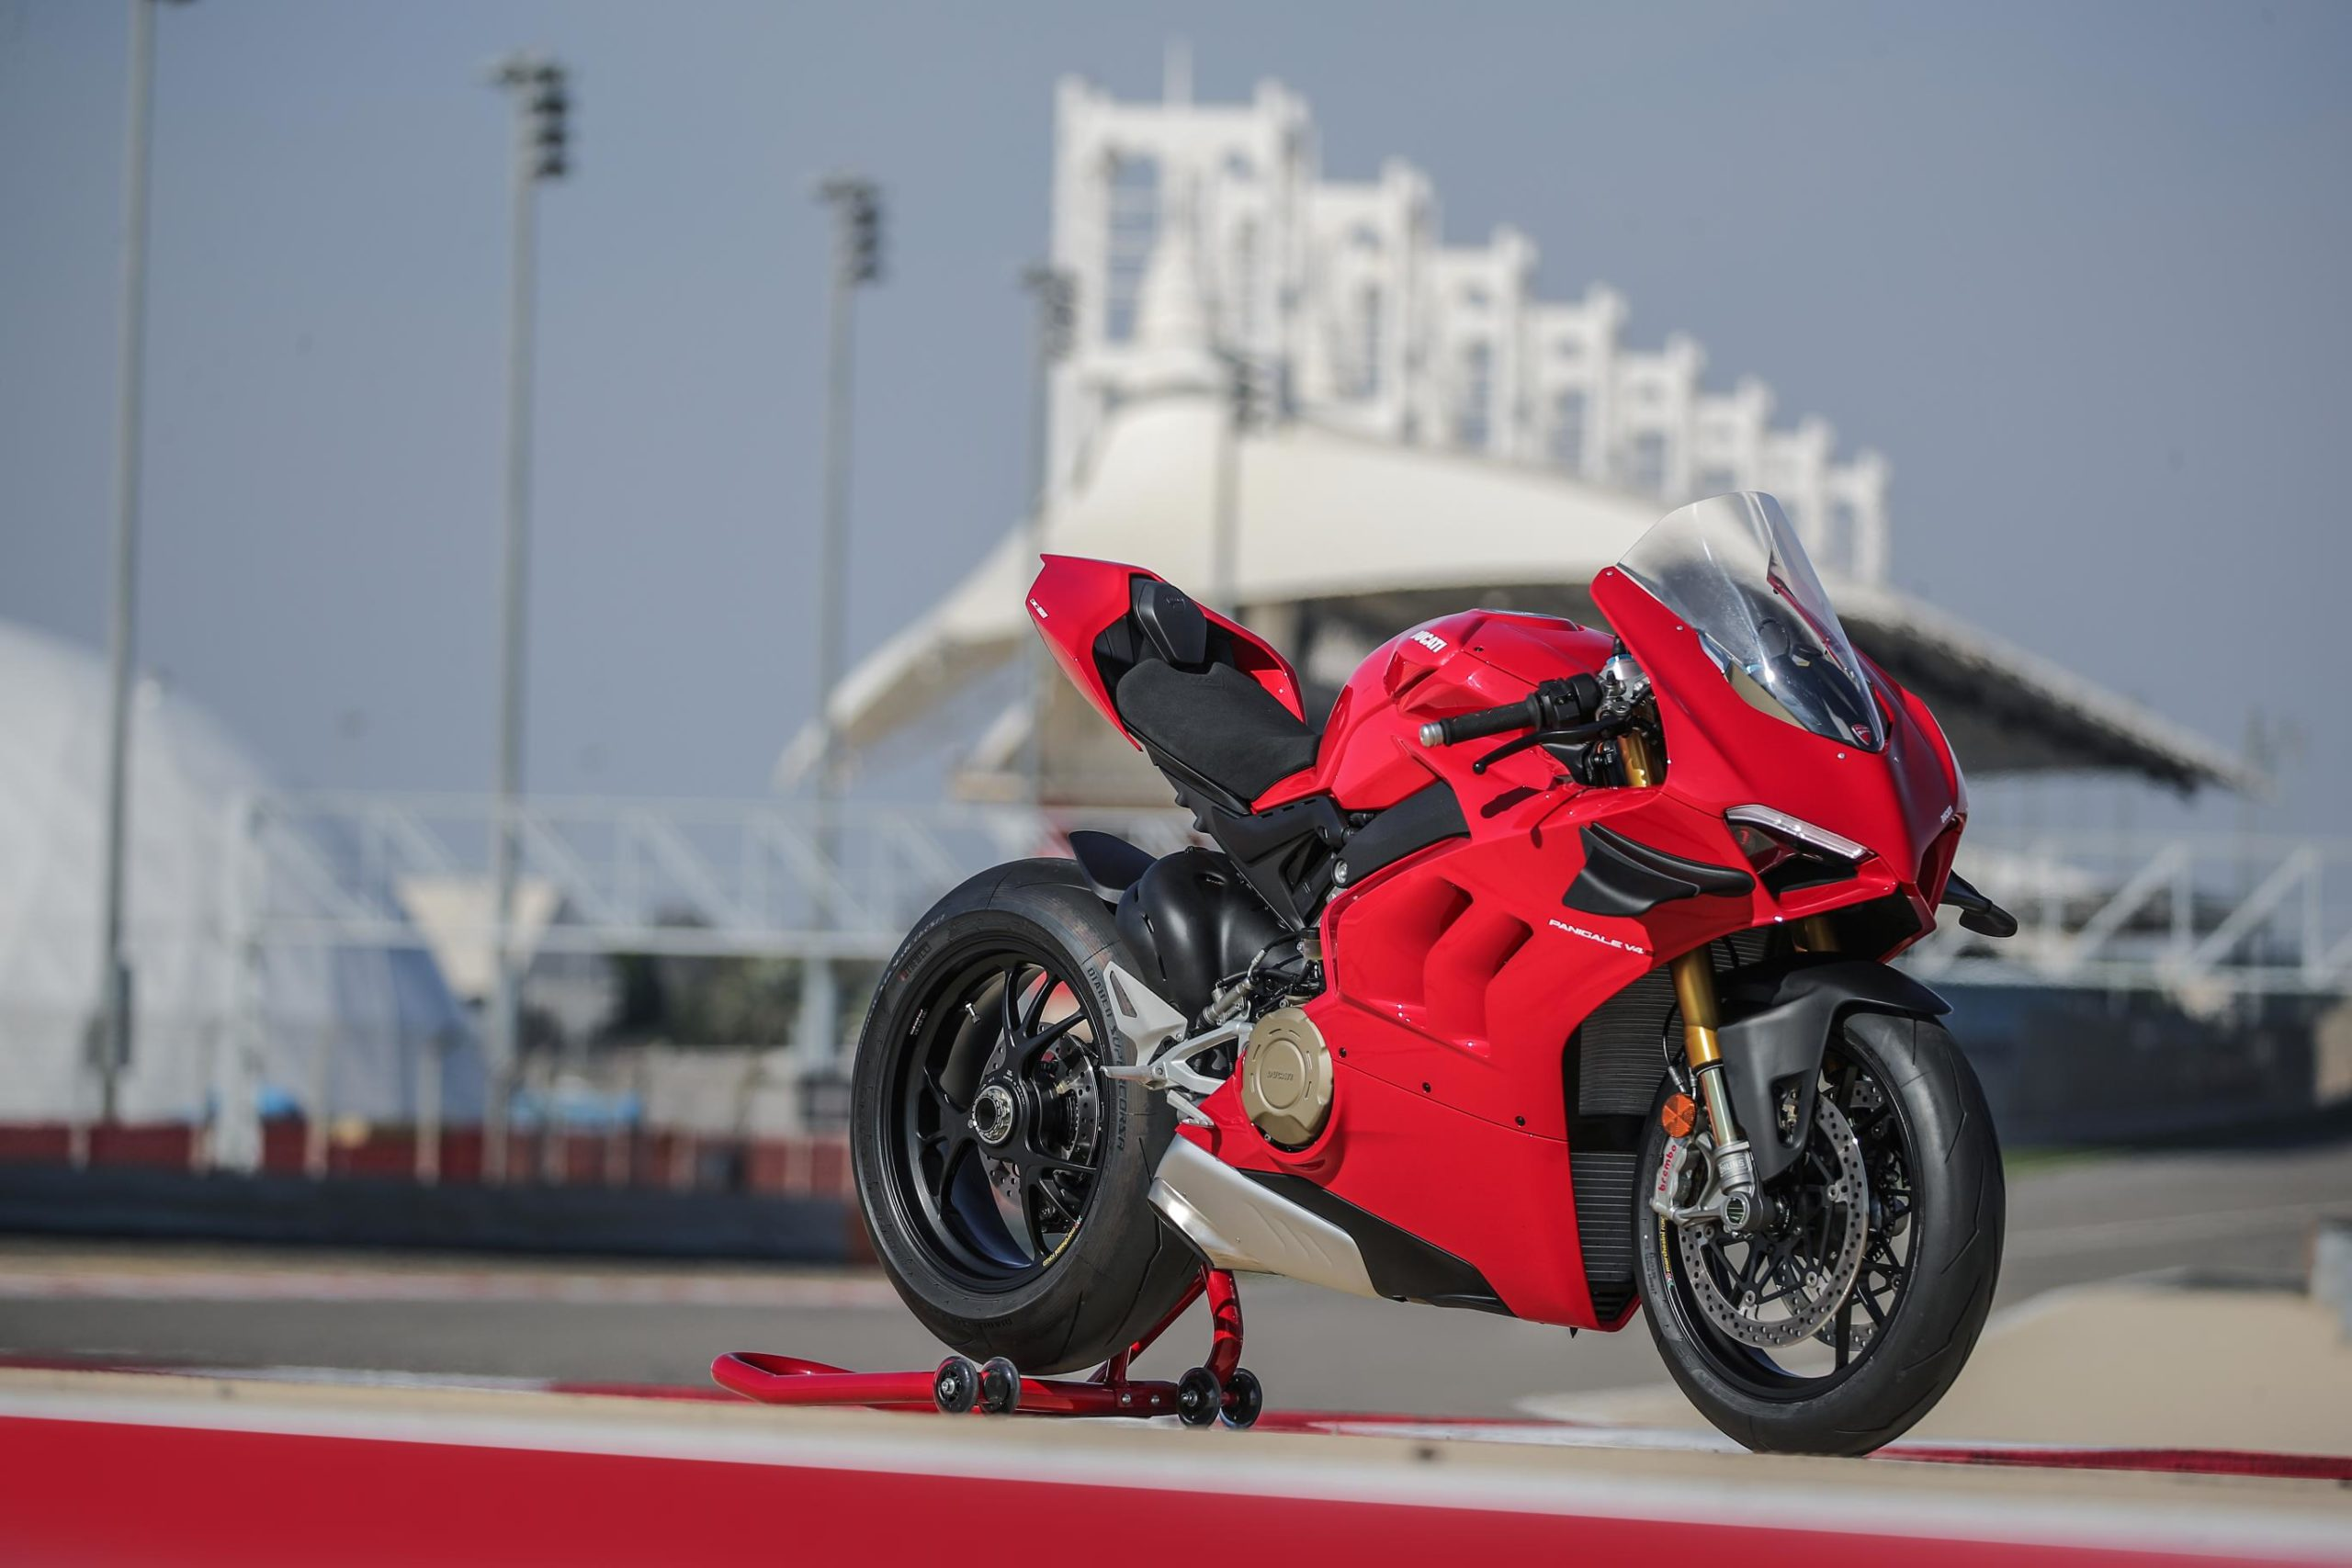 The new Ducati Panigale V4 MY 2020